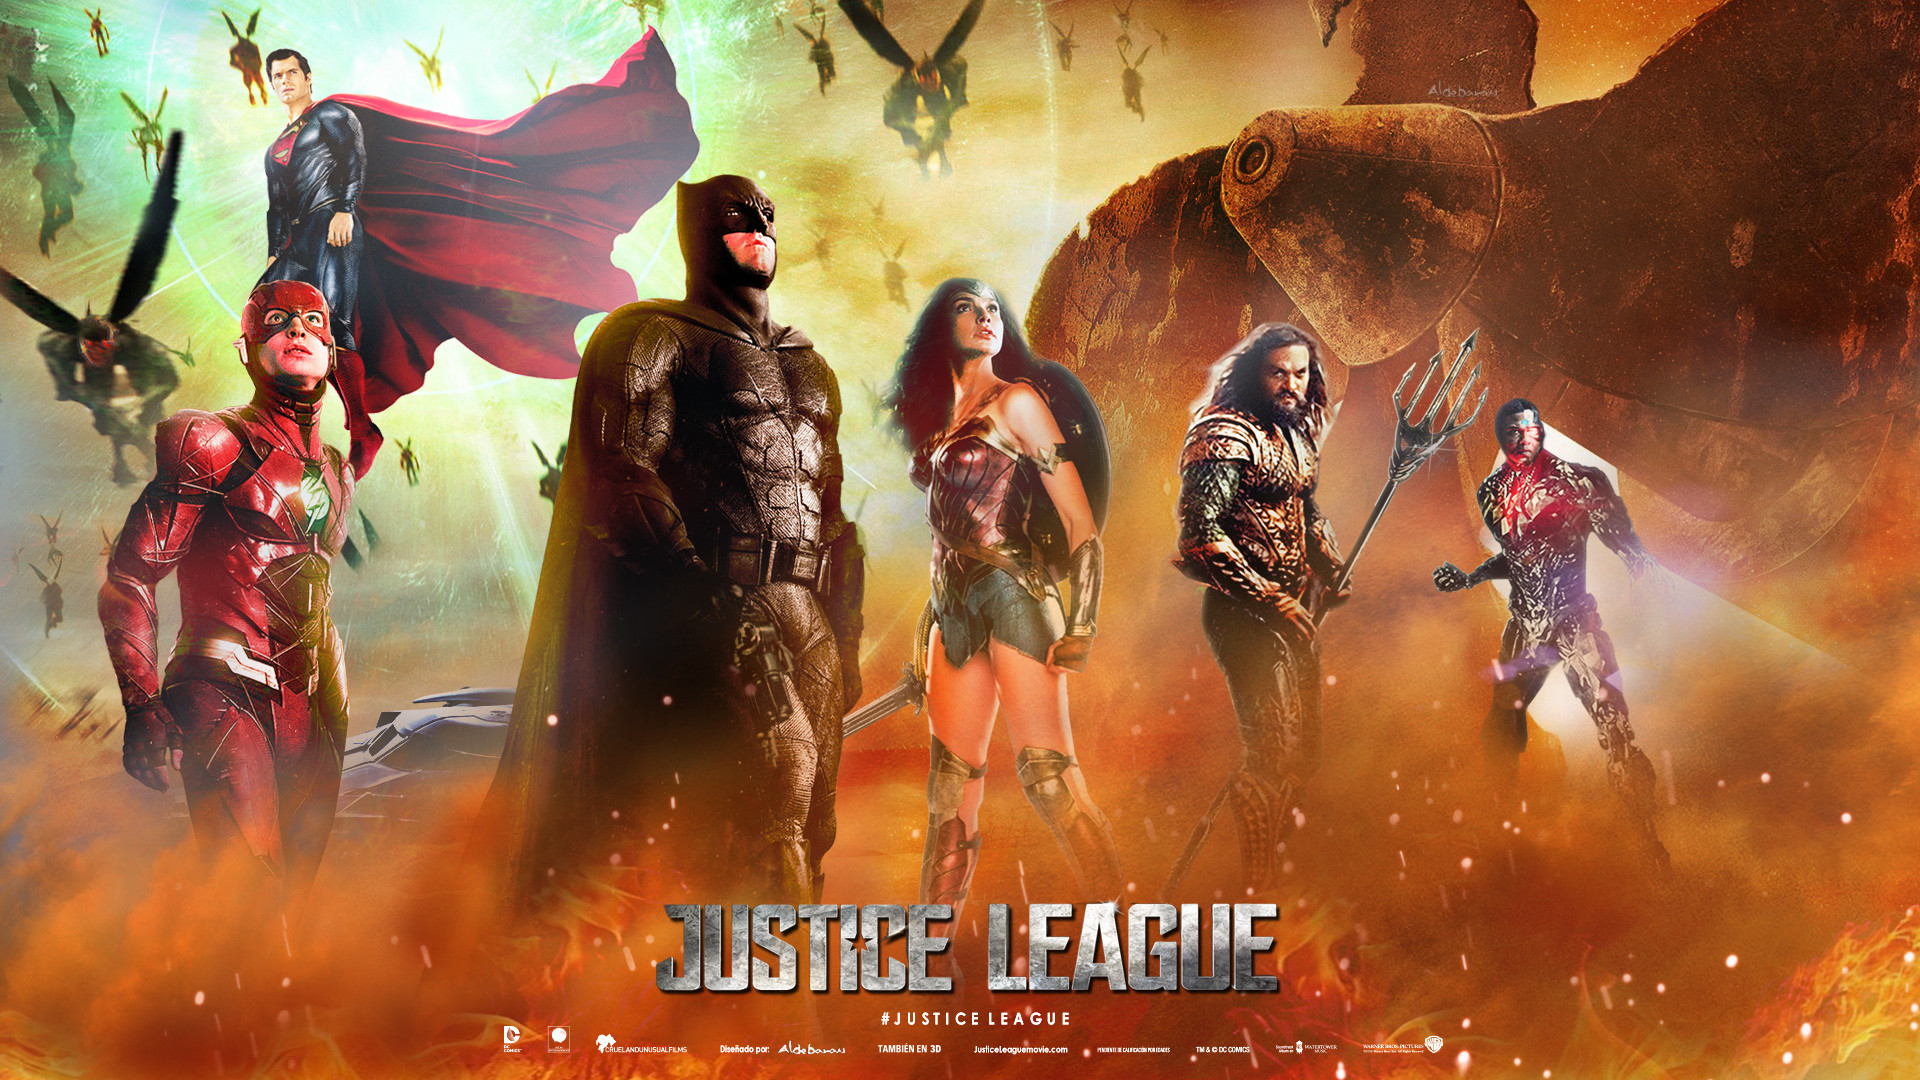 1920x1080 Justice League Movie Wallpaper by SaintAldebaran Justice League Movie  Wallpaper by SaintAldebaran